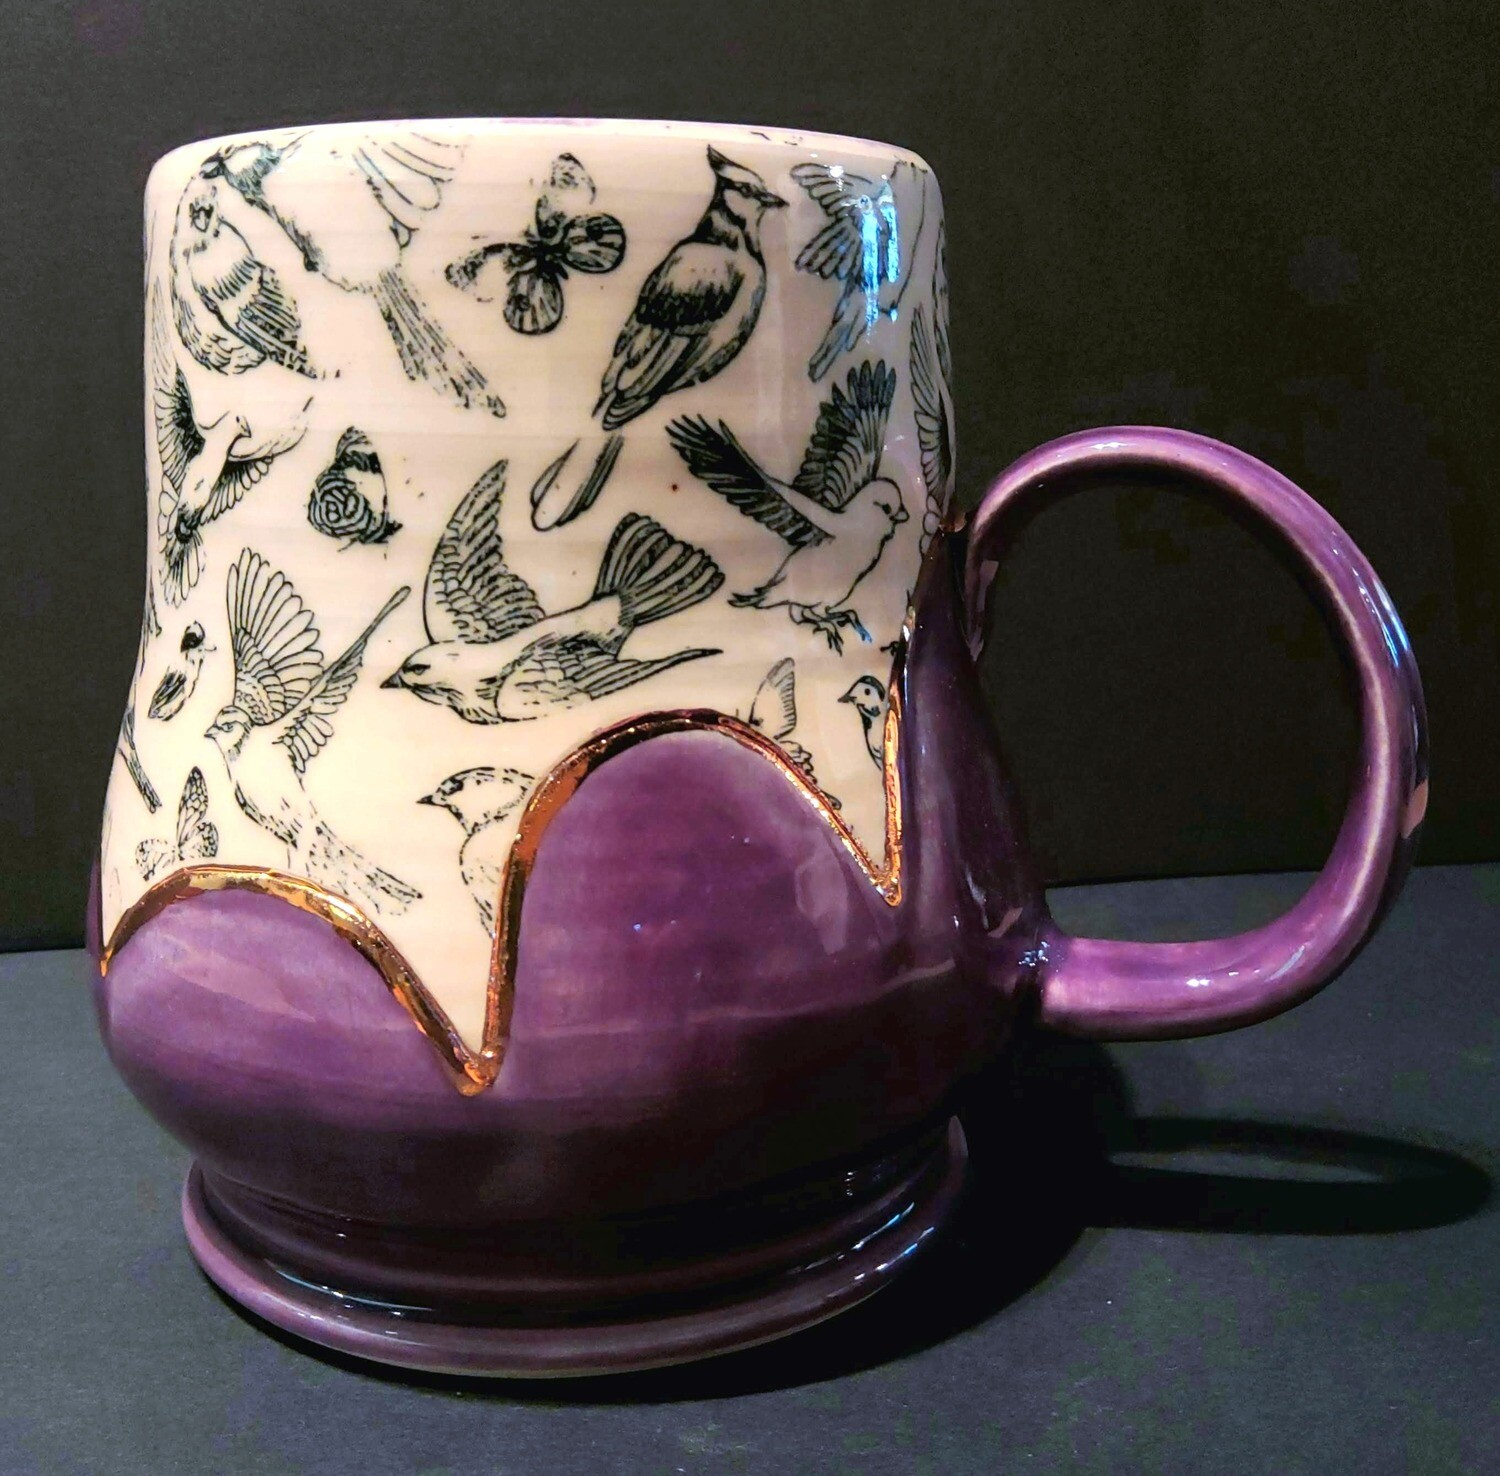 In Flight - Purple and Gold Lustre Scallop Handmade Mug, by Marian Pyron